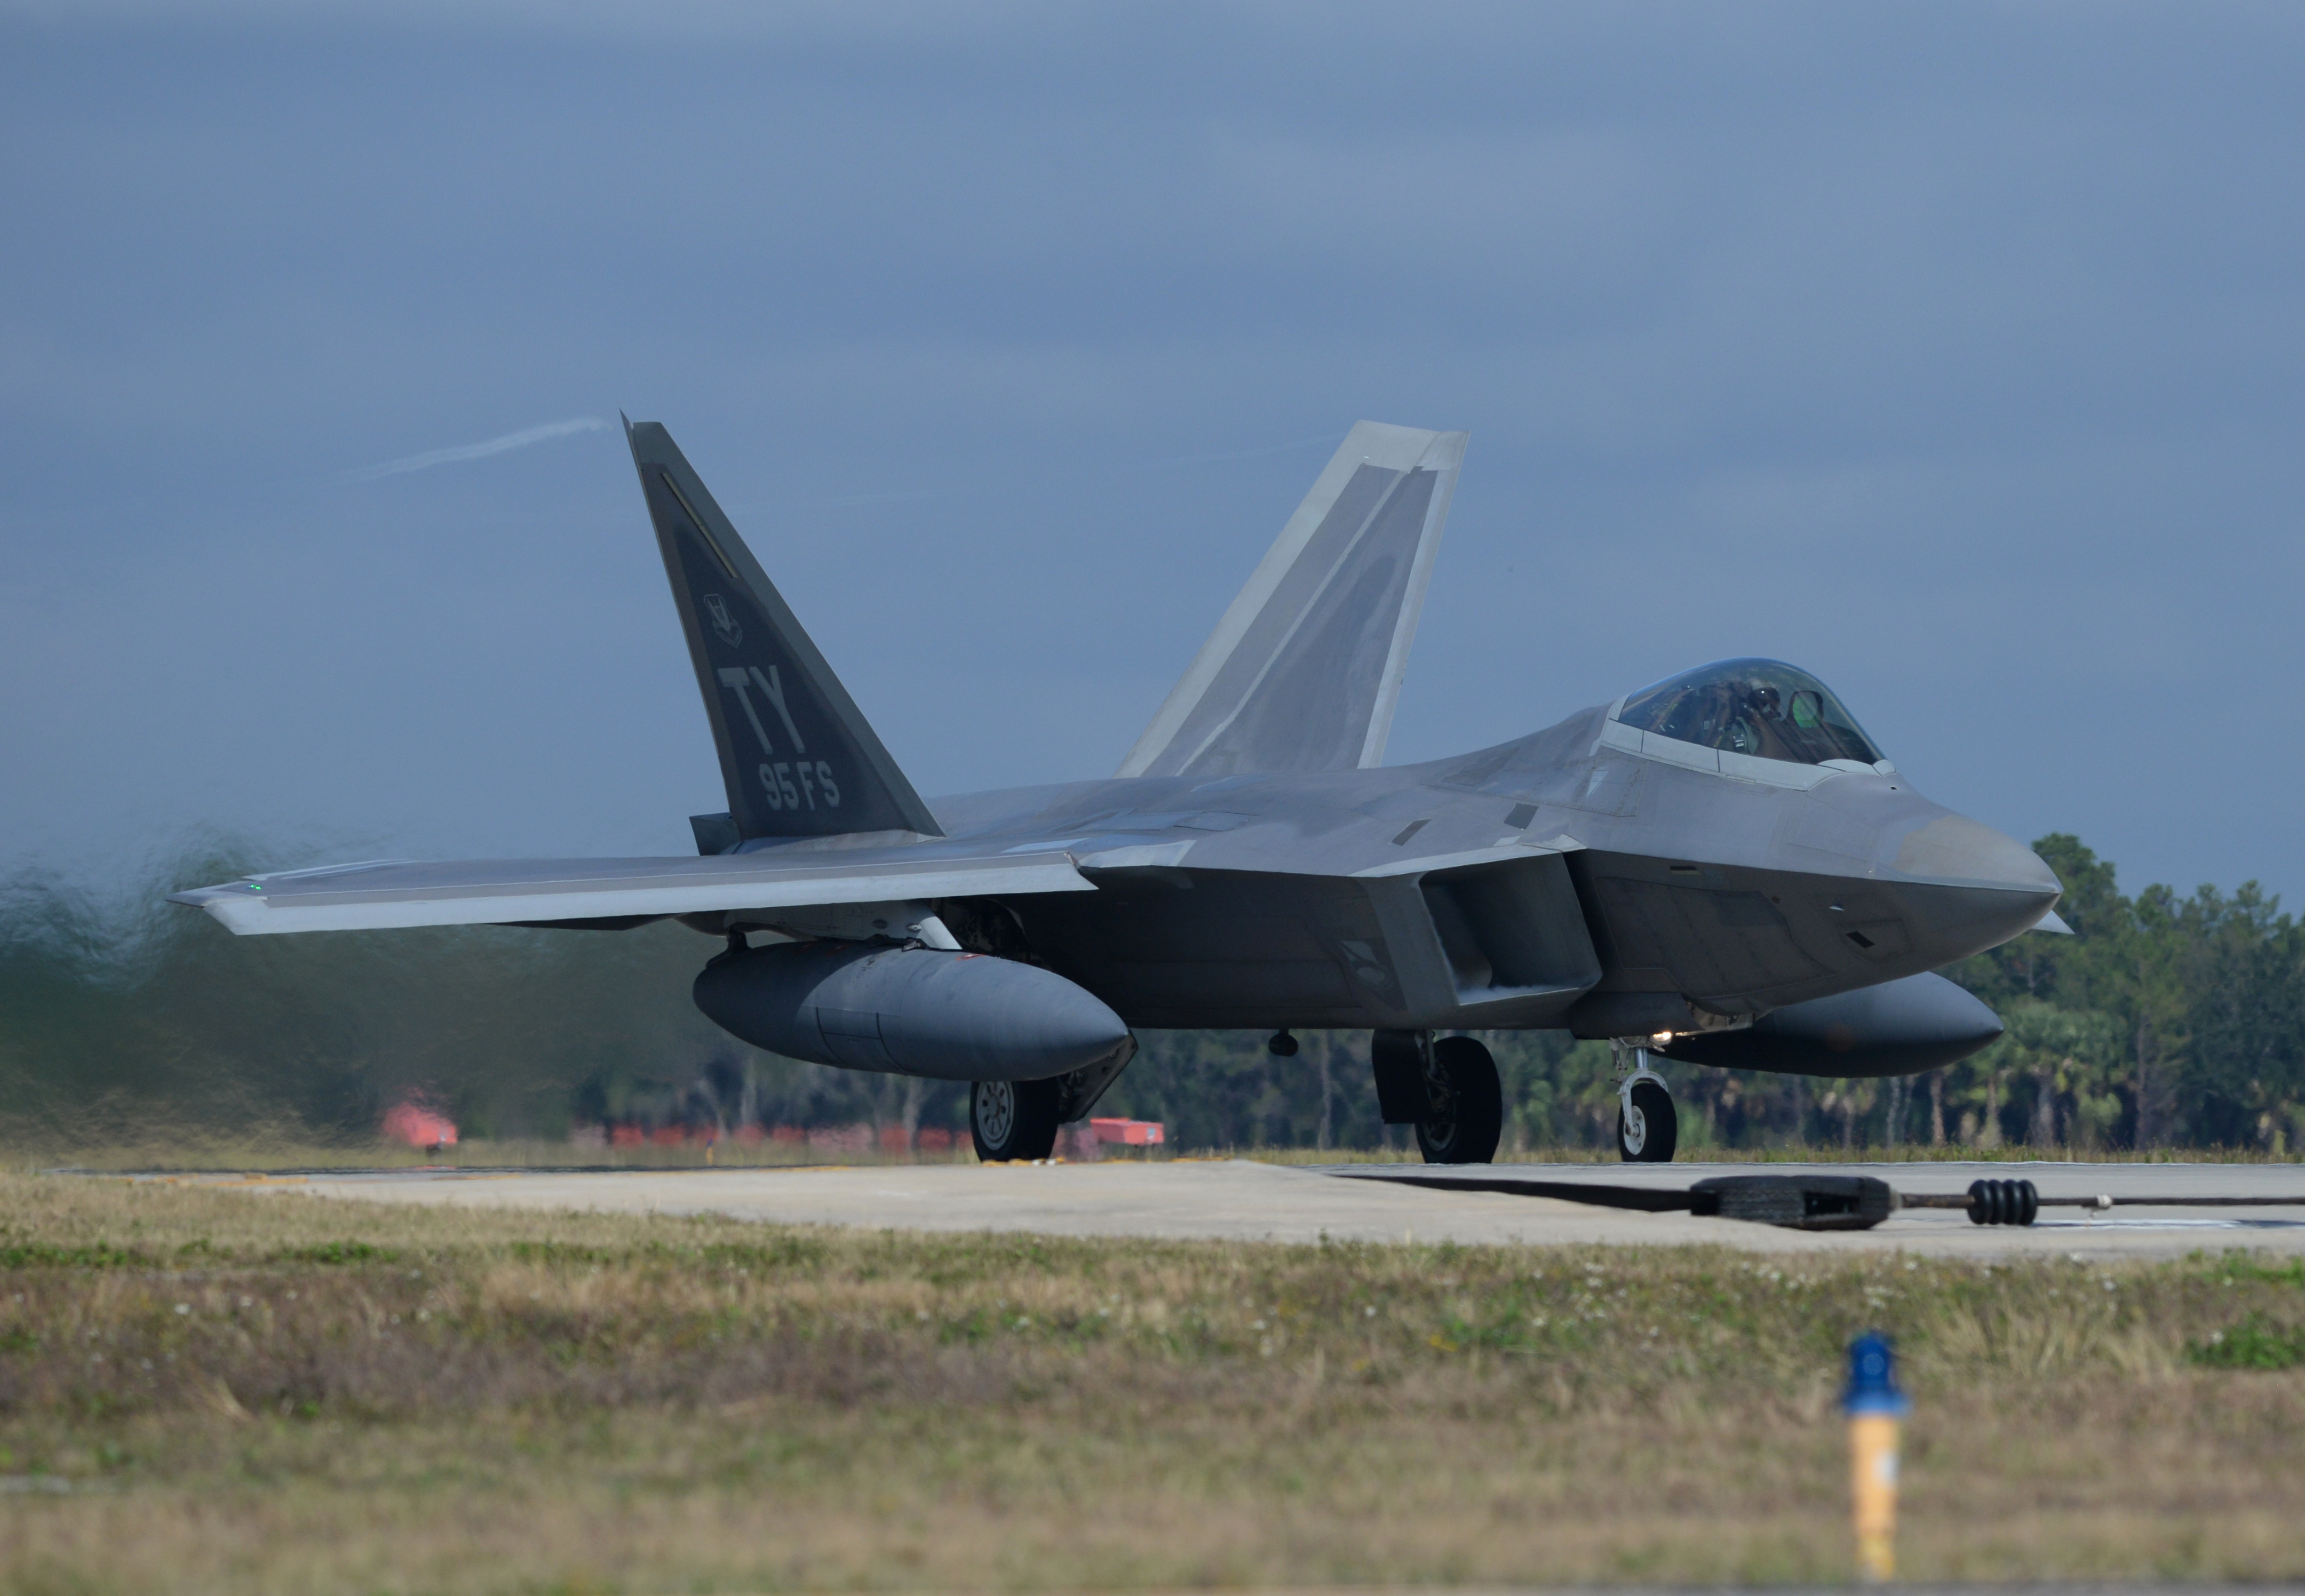 An F-22 Raptor from Tyndall Air Force Base, Fla., commences take off Nov. 5 at the Tyndall flightline. The F-22 Raptor's combination of stealth, supercruise, maneuverability and integrated avionics, coupled with improved supportability, represents an exponential leap in warfighting capabilities and allows for the full realization of operational concepts that are vital to the 21st century Air Force. (U.S. Air Force photo by Senior Airman Sergio A. Gamboa/Released)